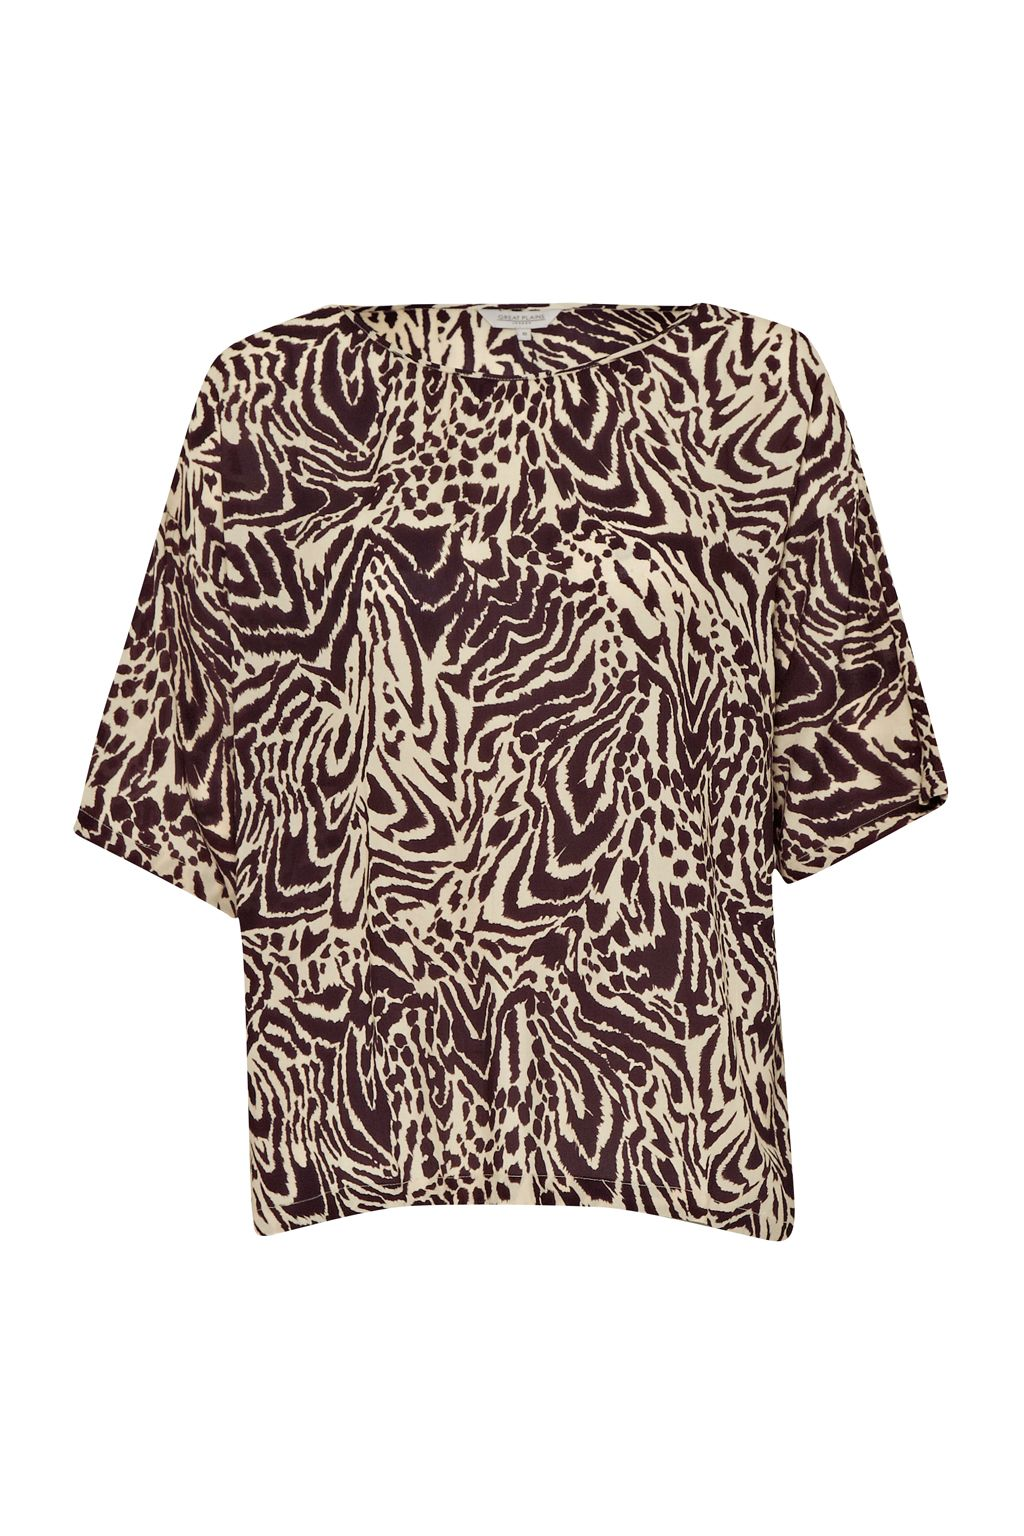 Great Plains Great Plains Simba Print Slouchy Top, Brown